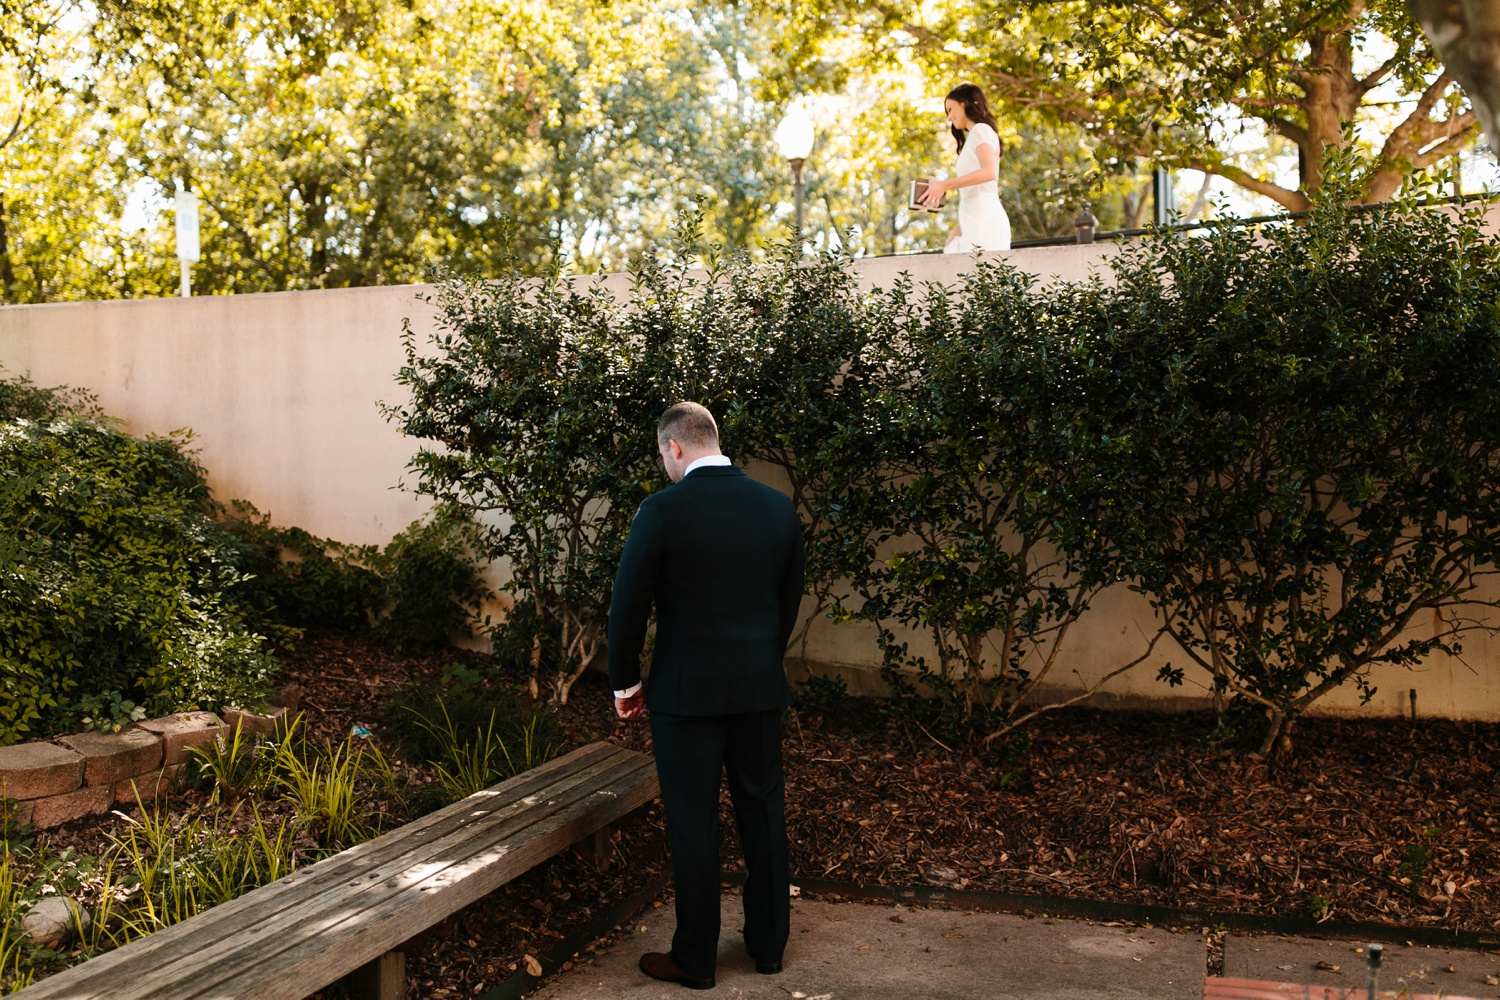 Kadee + Tyler | a raw, emotional wedding at the Filter Building on White Rock Lake in Dallas, TX by North Texas Wedding Photographer, Rachel Meagan Photography 036